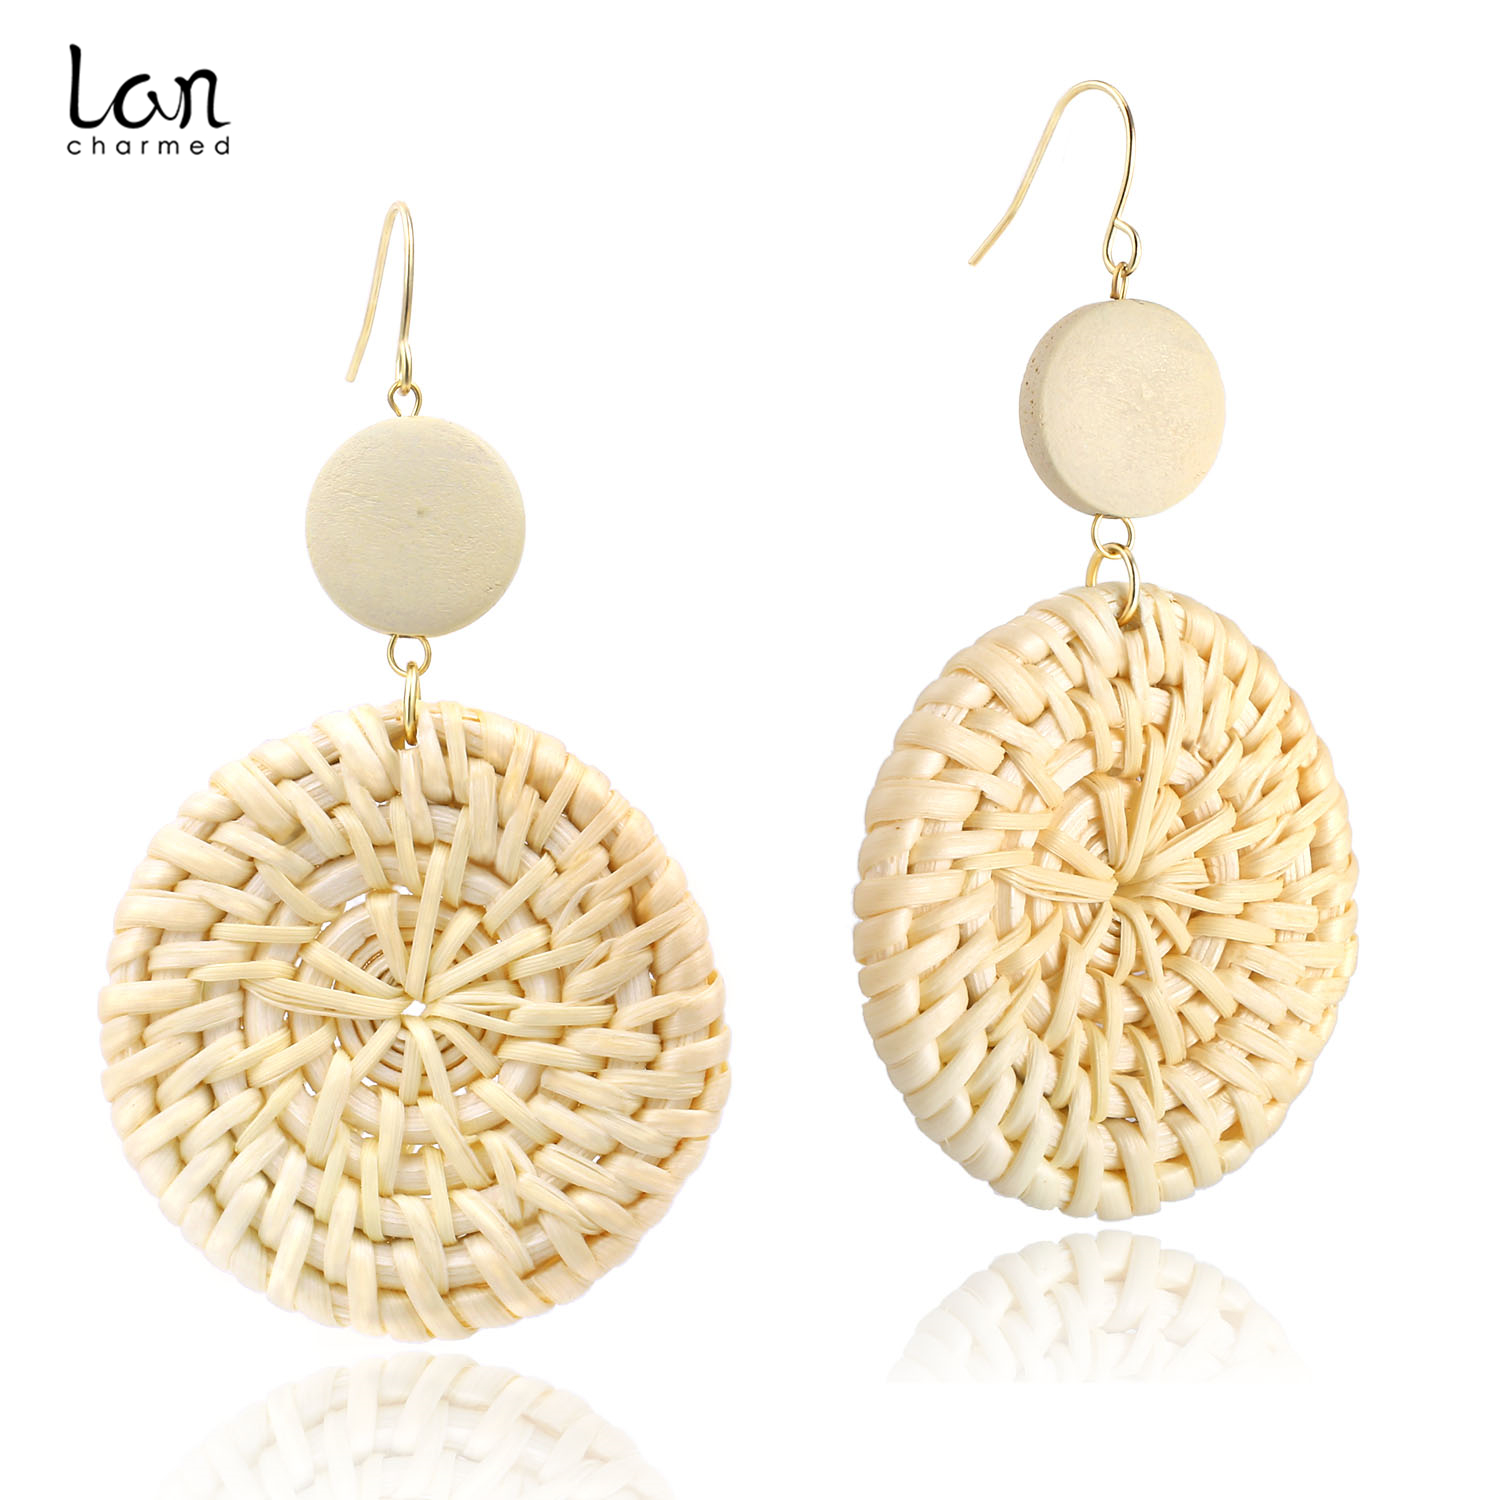 2019 Hot Sale Fashion Rattan Wicker Wood Woven Drop Earrings Statement Earrings for Women Bohemia Ladies Earrings in Drop Earrings from Jewelry Accessories